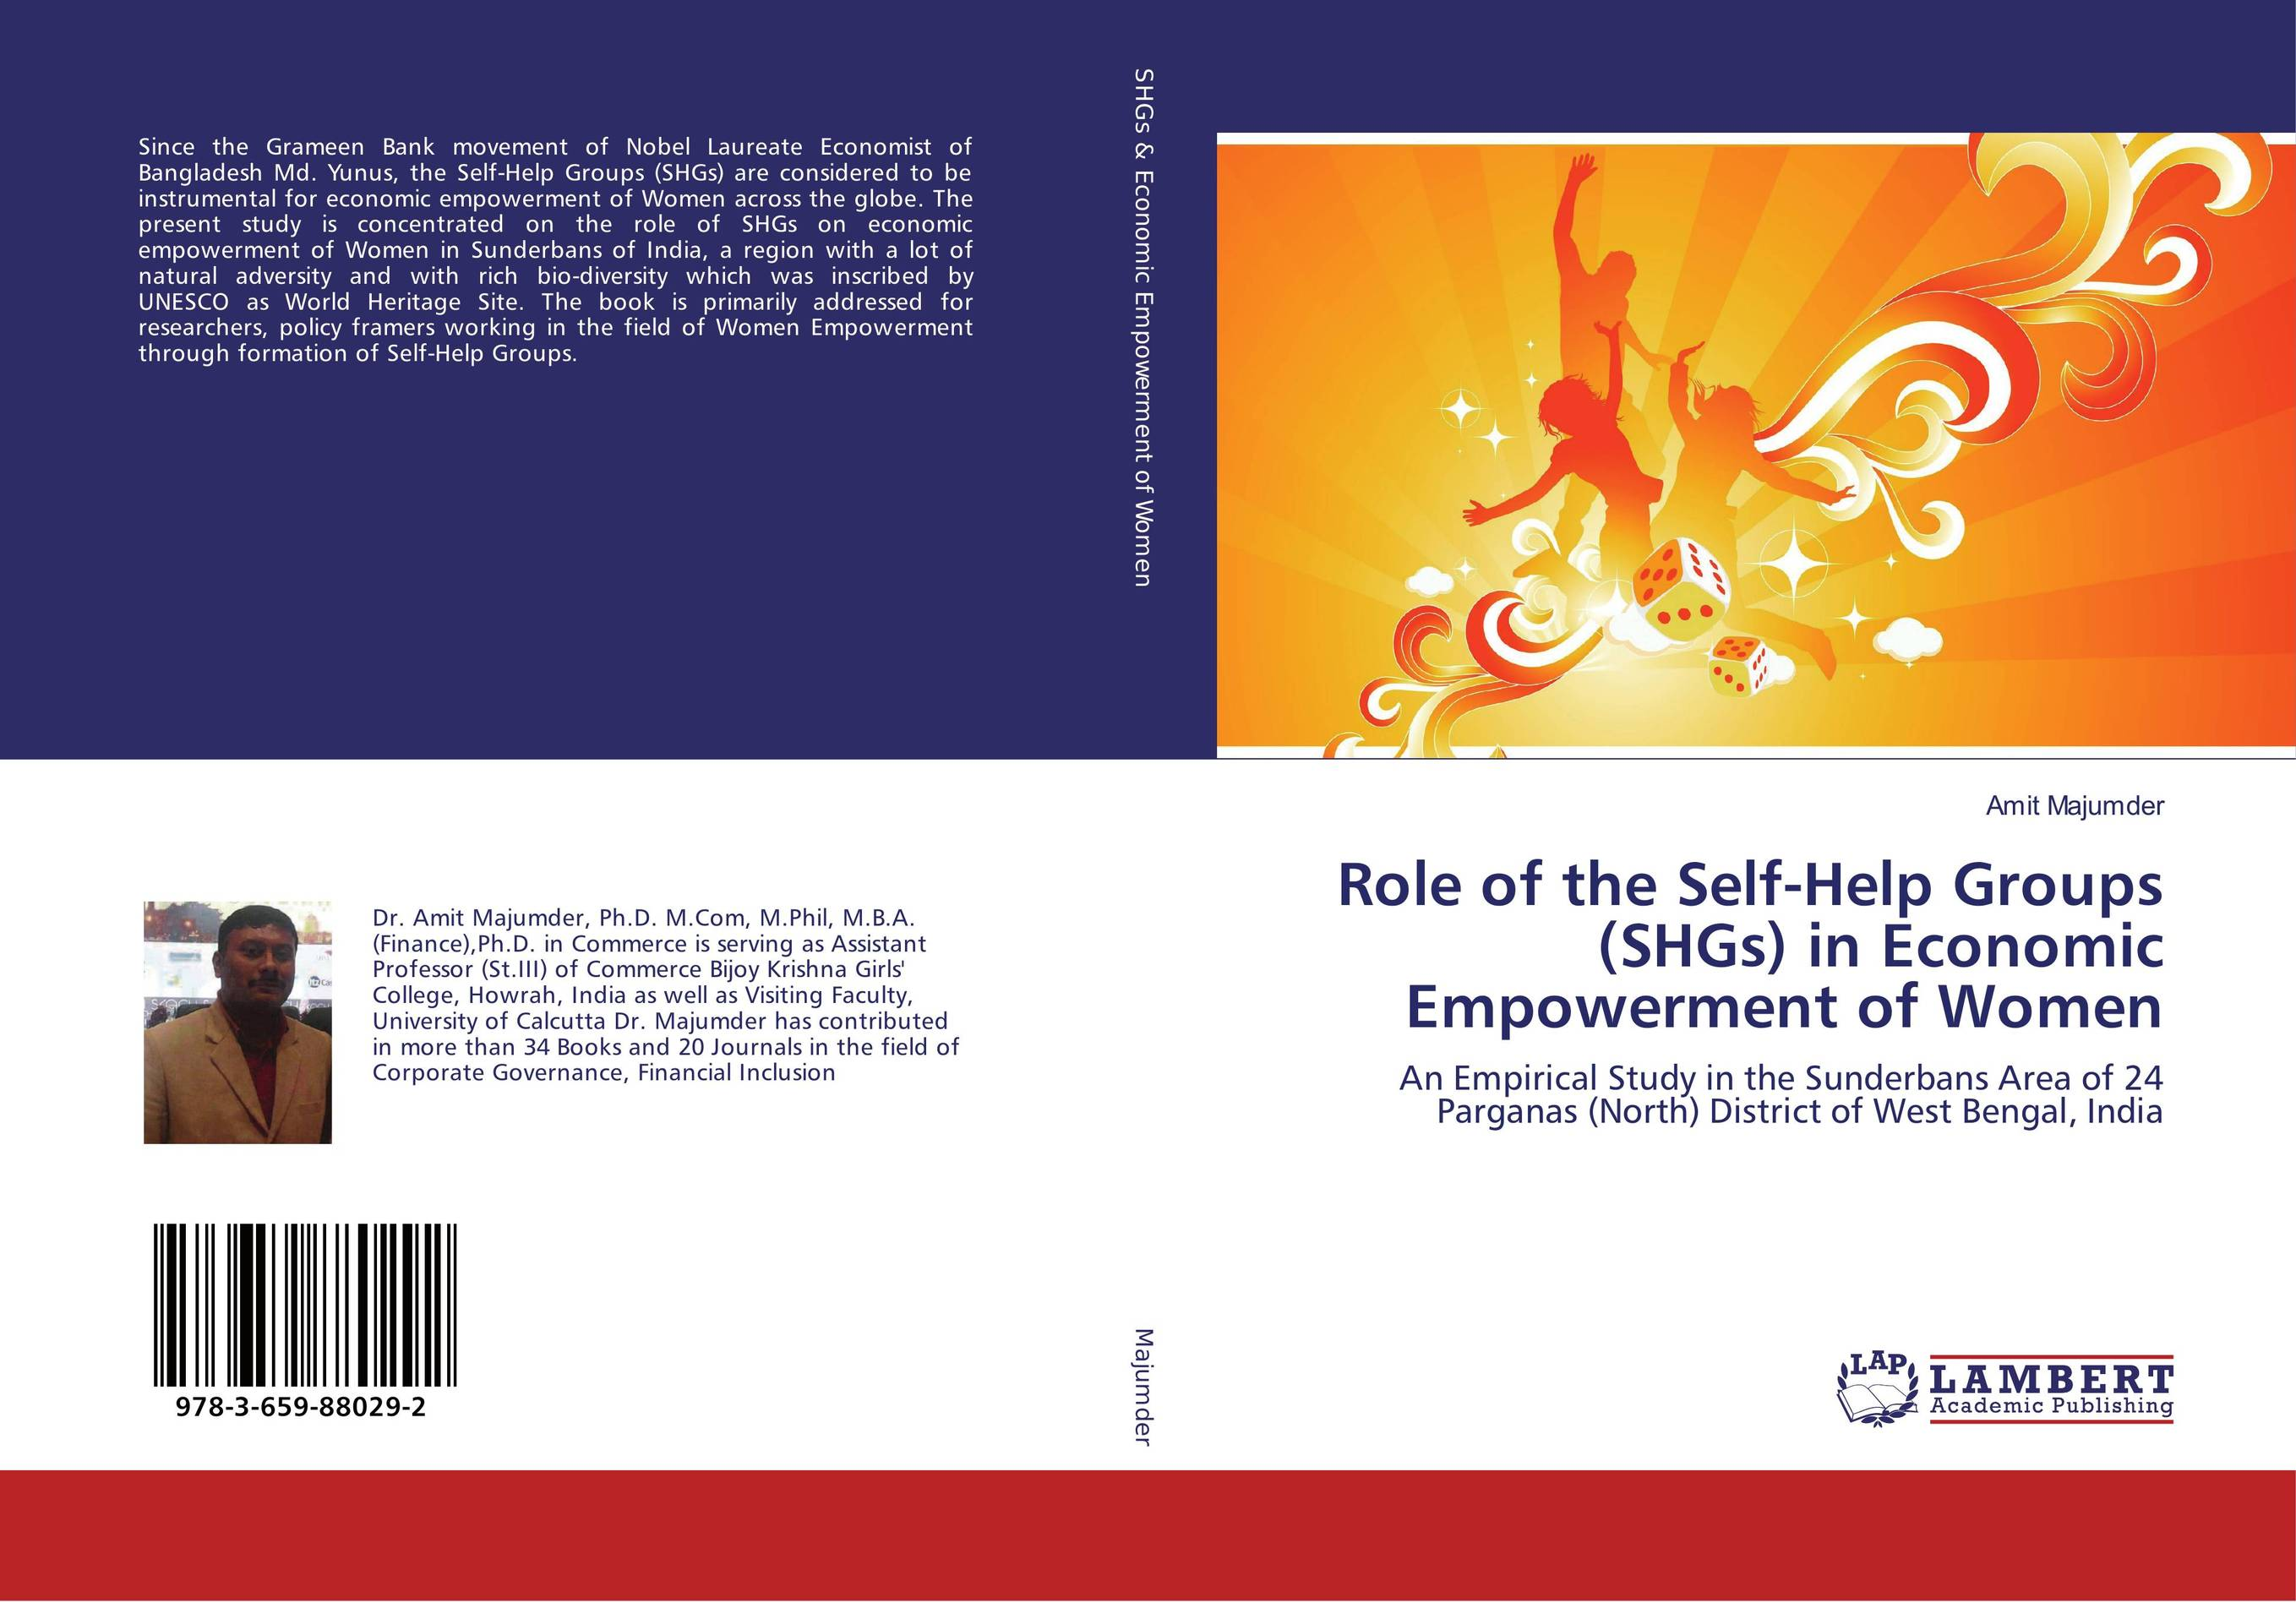 Role of the Self-Help Groups (SHGs) in Economic Empowerment of Women women empowerment through self help groups in rural areas